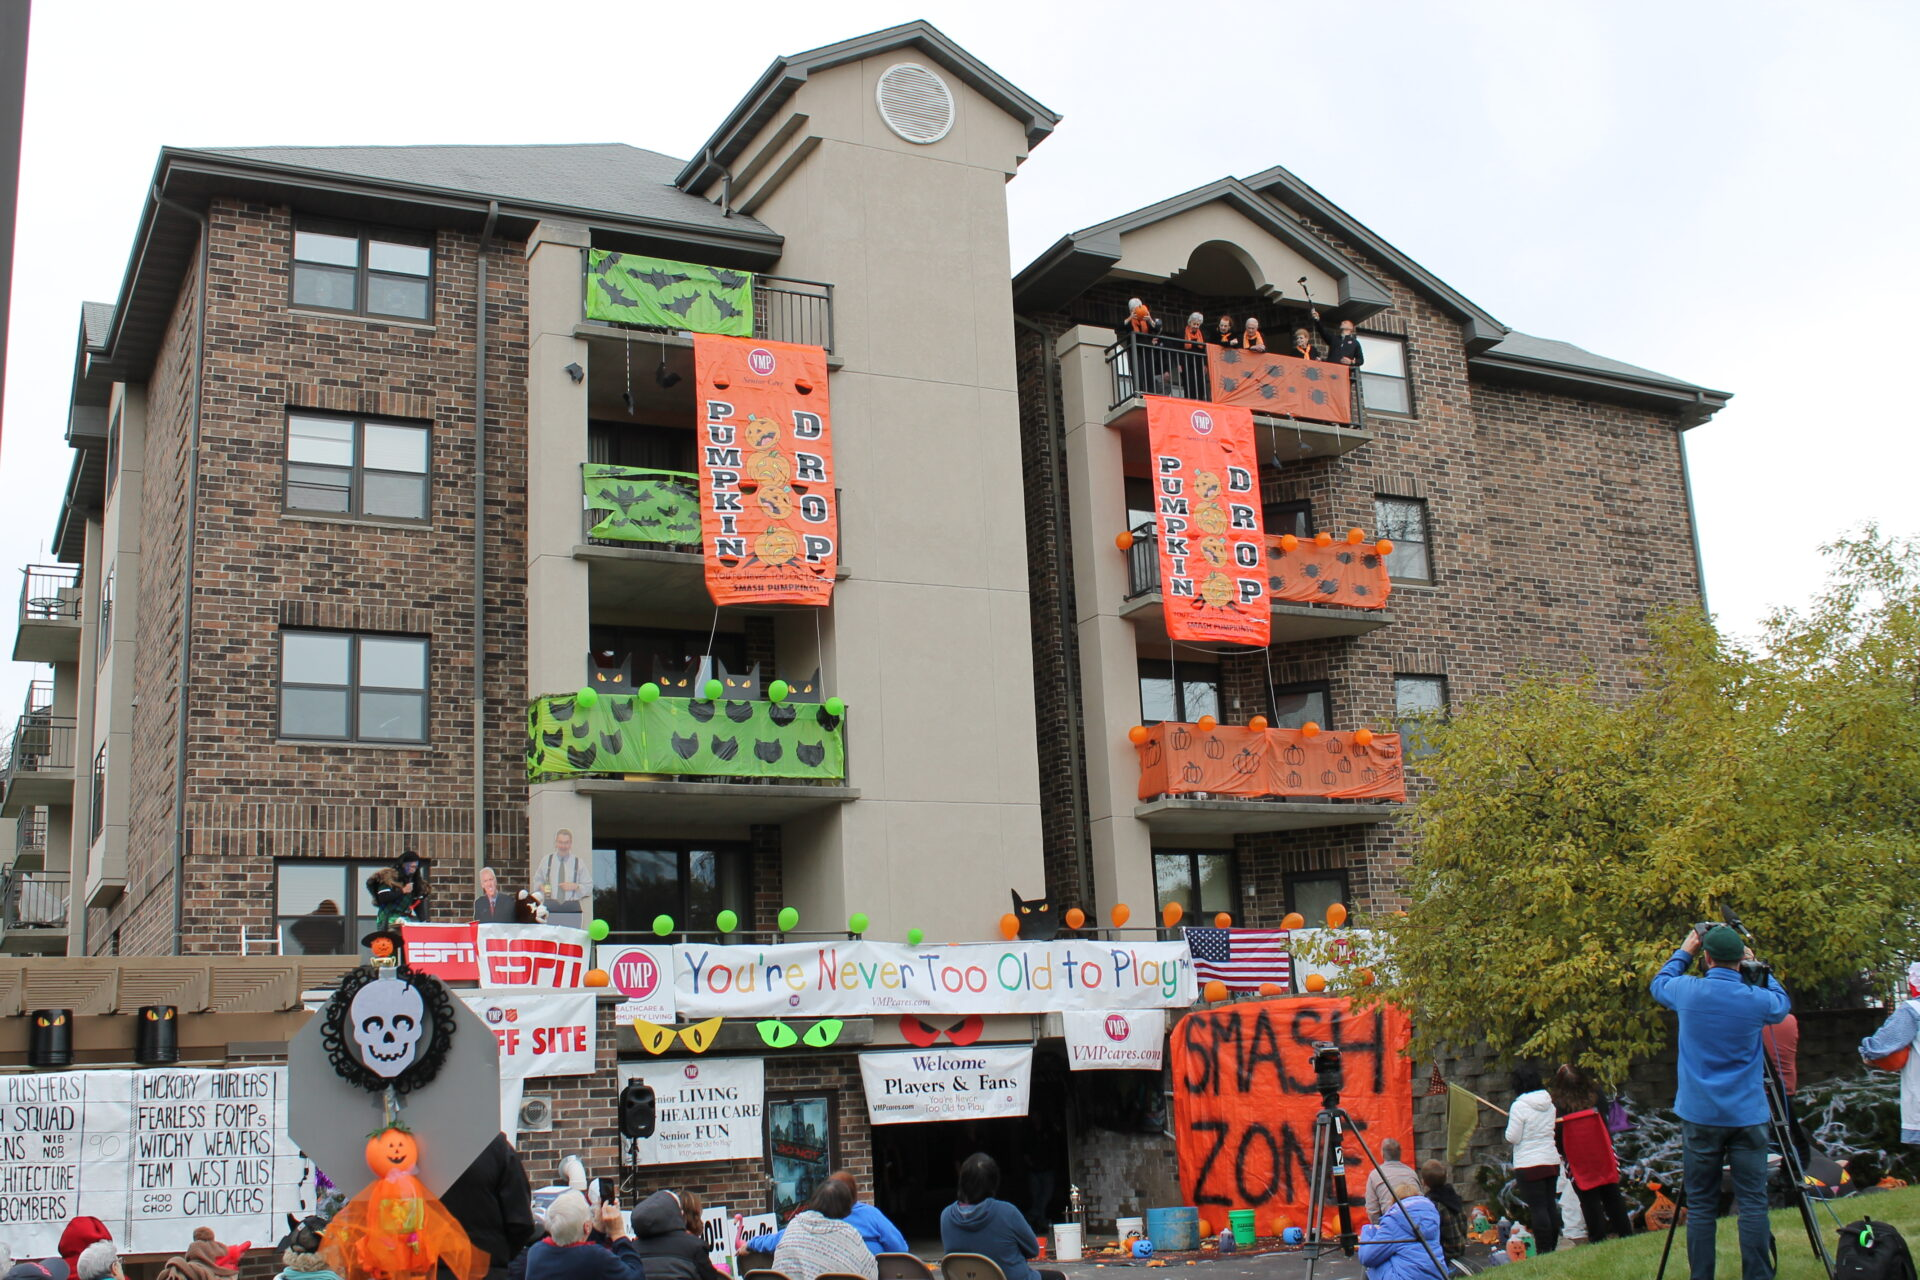 Independent Living residents throwing pumpkin off the roof for annual Pumpkin Drop